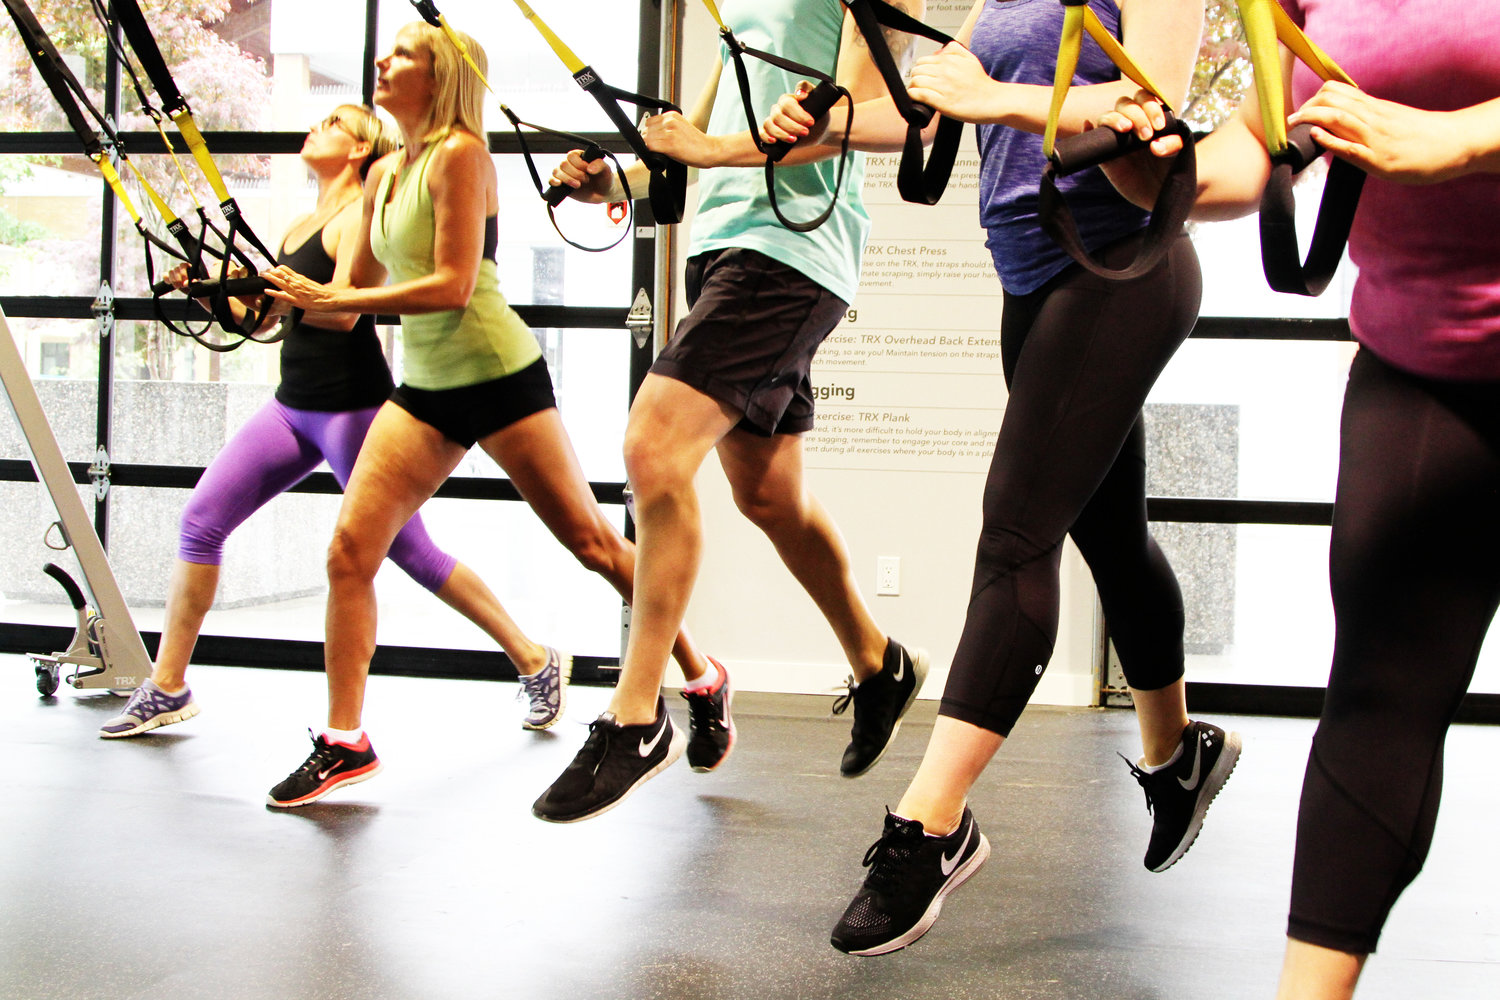 4 Benefits Of Trx Suspension Training True Conditioning The Totalbody Circuit Workout You Can Do While Travel